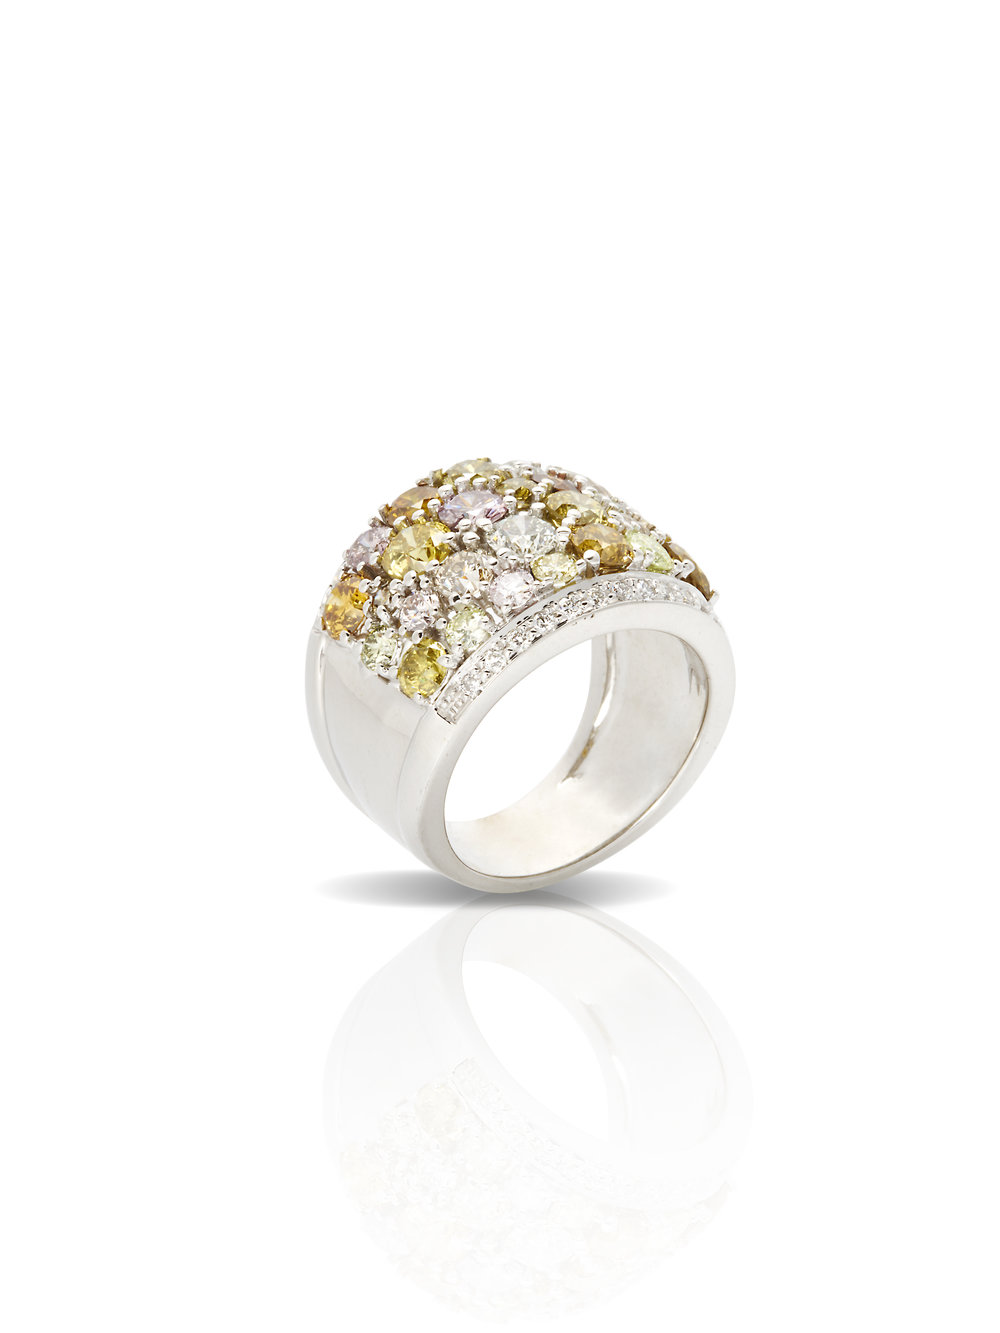 KATE RING   18 K GOLD .25 CT OF WHITE DIAMONDS 3.97 CT OF COLORED DIAMONDS